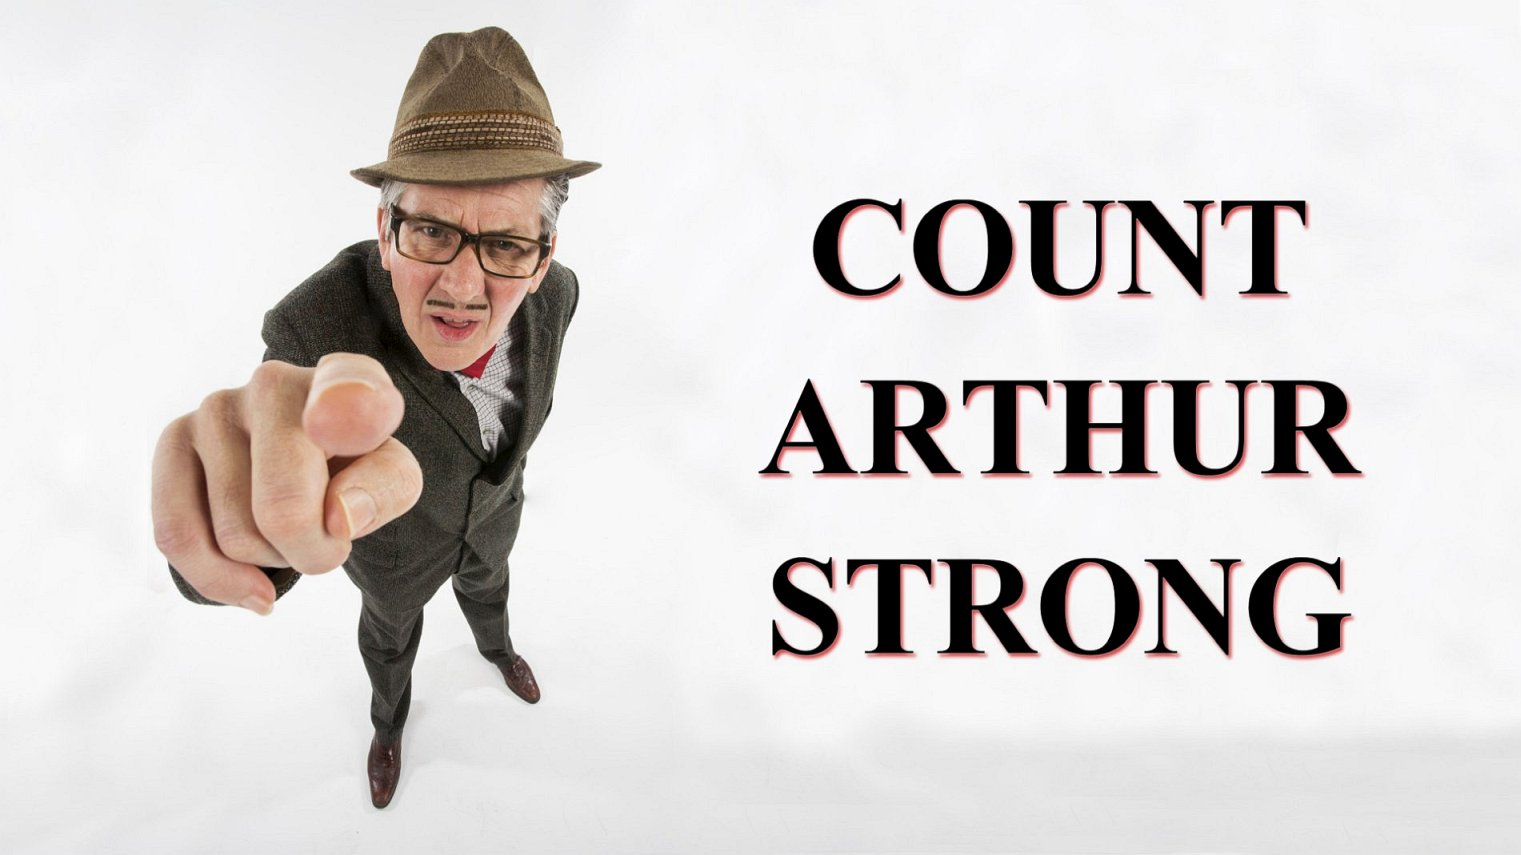 what time is Count Arthur Strong on